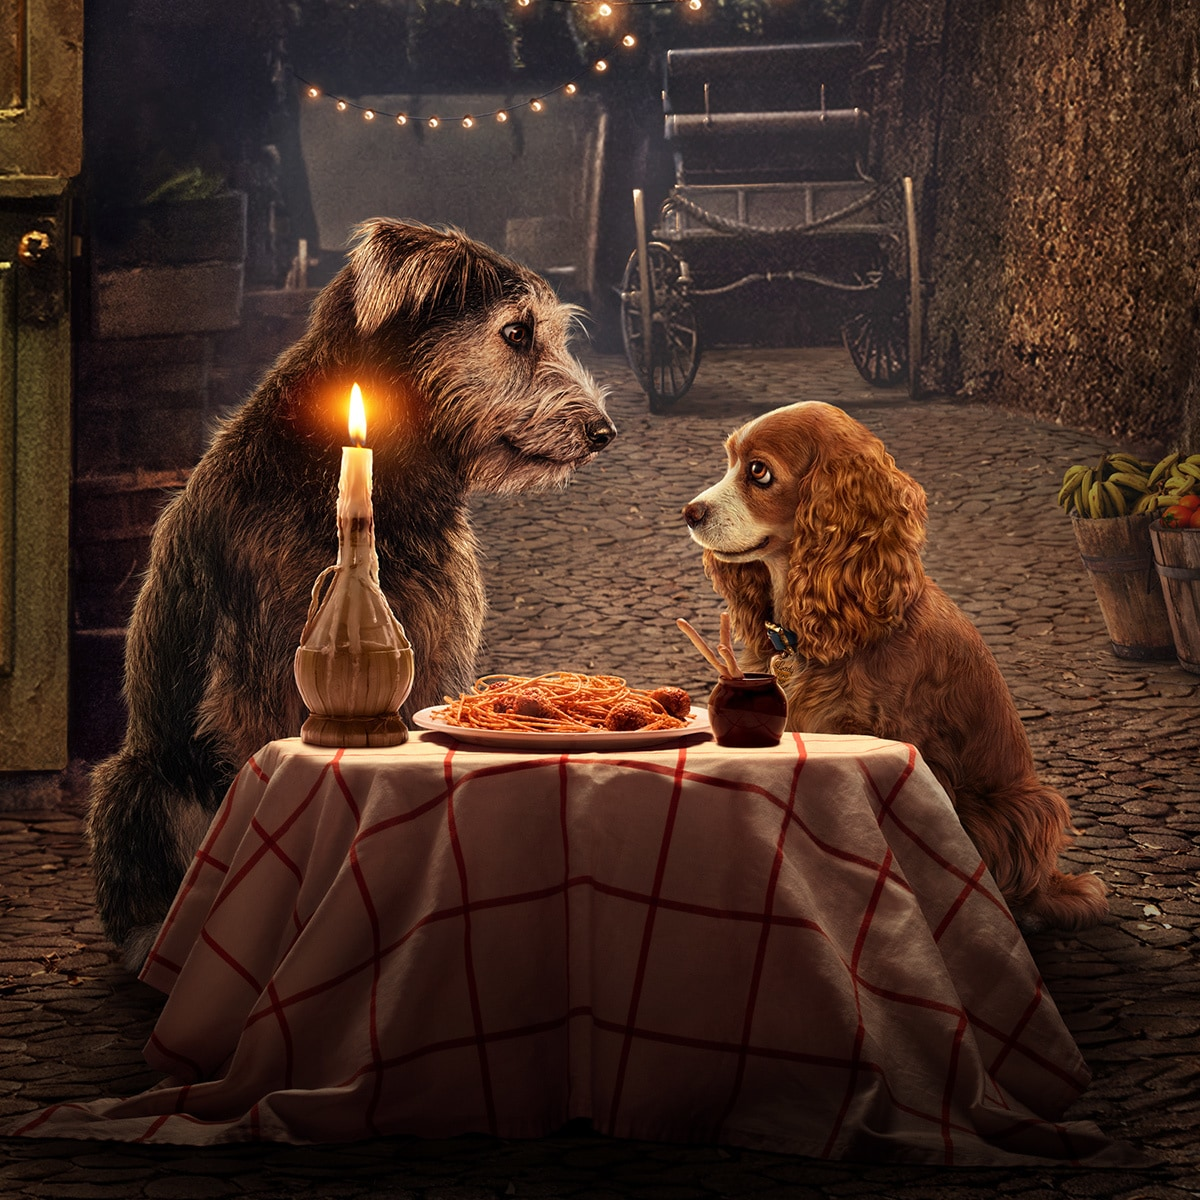 Lady and the Tramp. Original Film Now Streaming on Disney+ in Australia and New Zealand